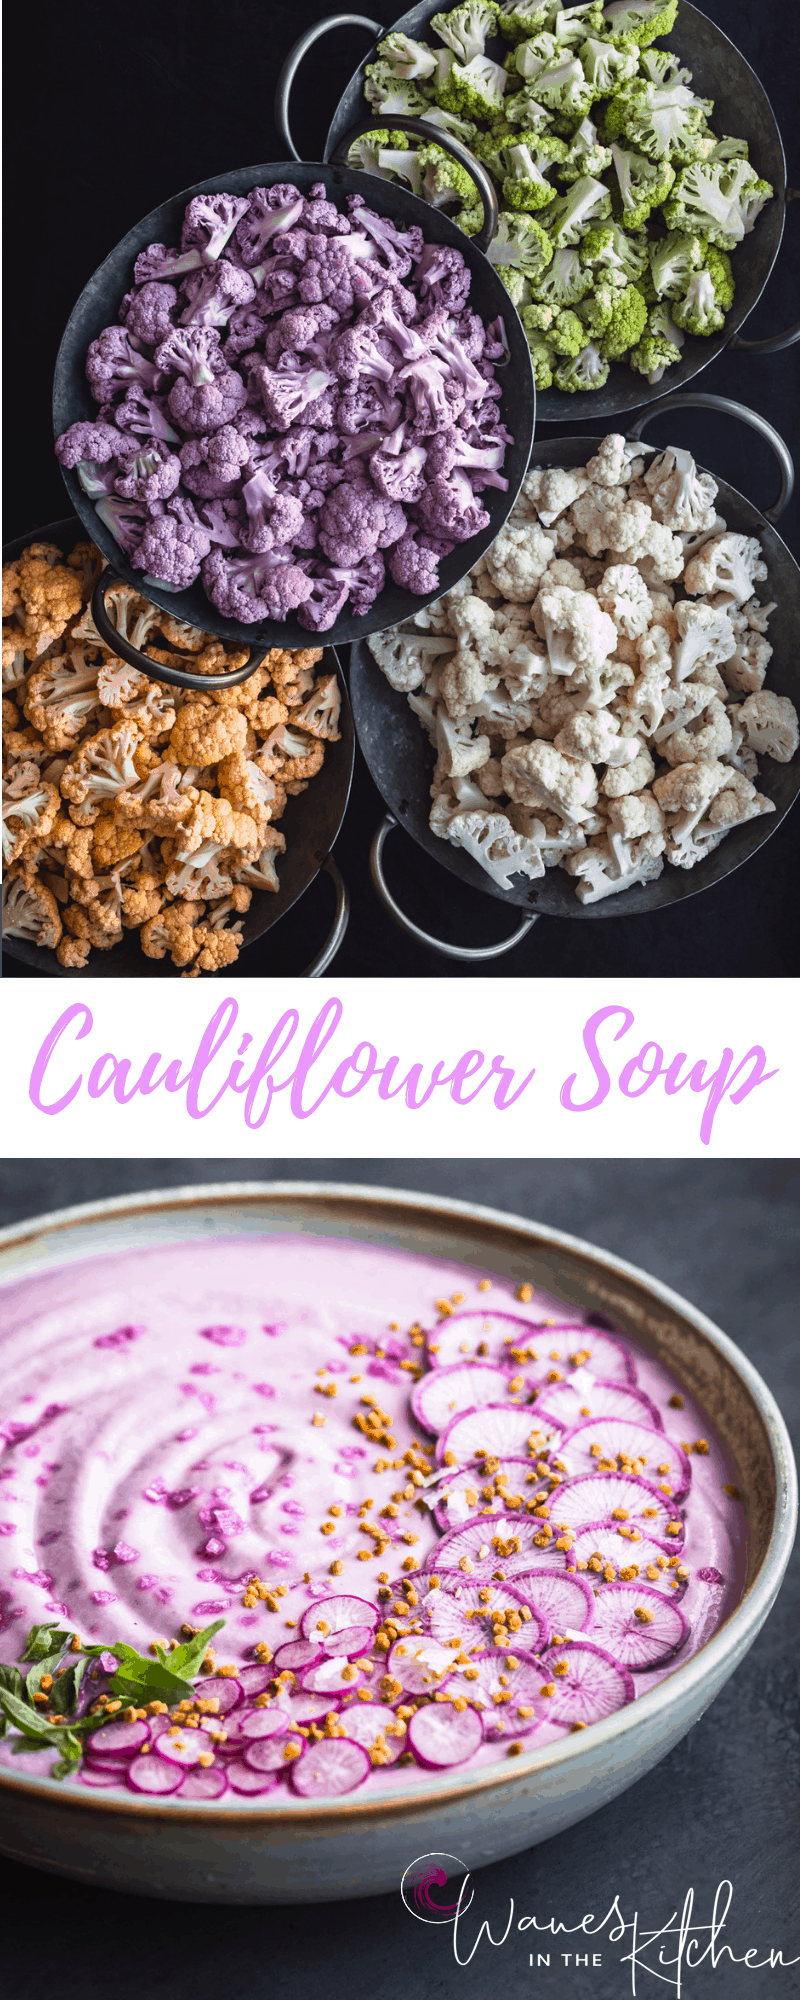 Yellow/Orange, Purple, White, and Green Cauliflower on top and the finished roasted purple cauliflower soup on the bottom.